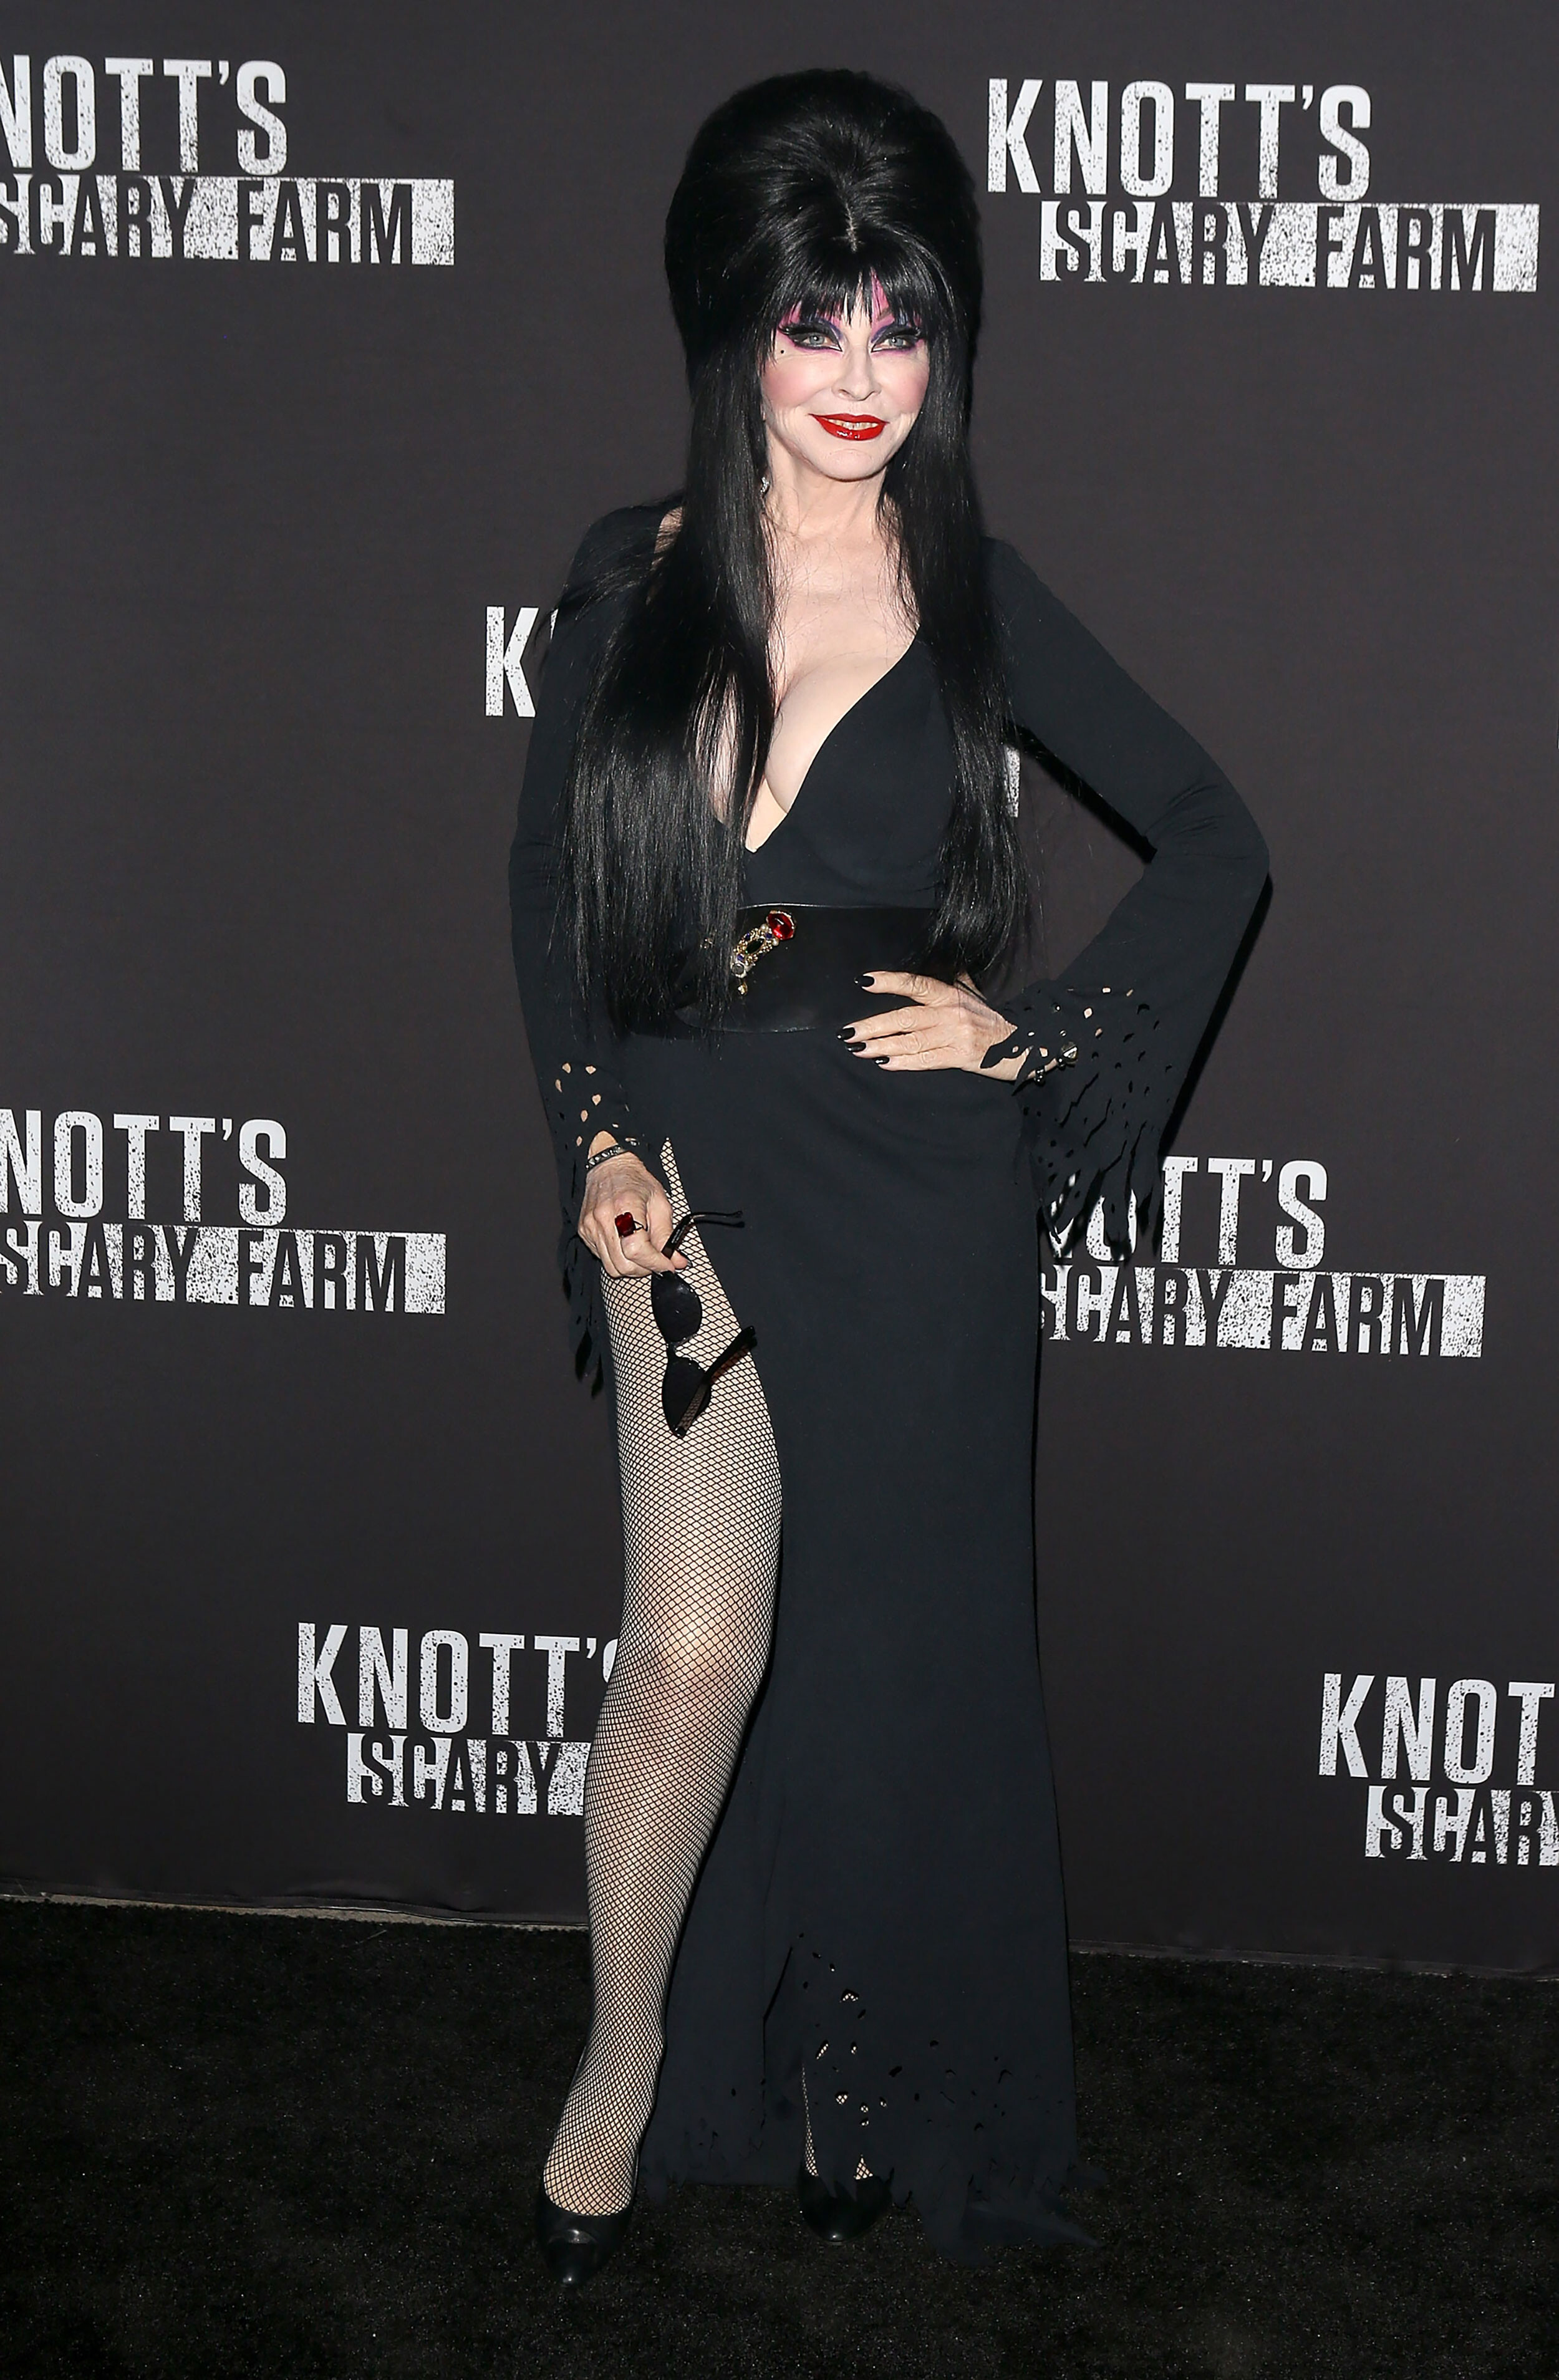 Elvira shares she's been in a 19-year relationship with a woman